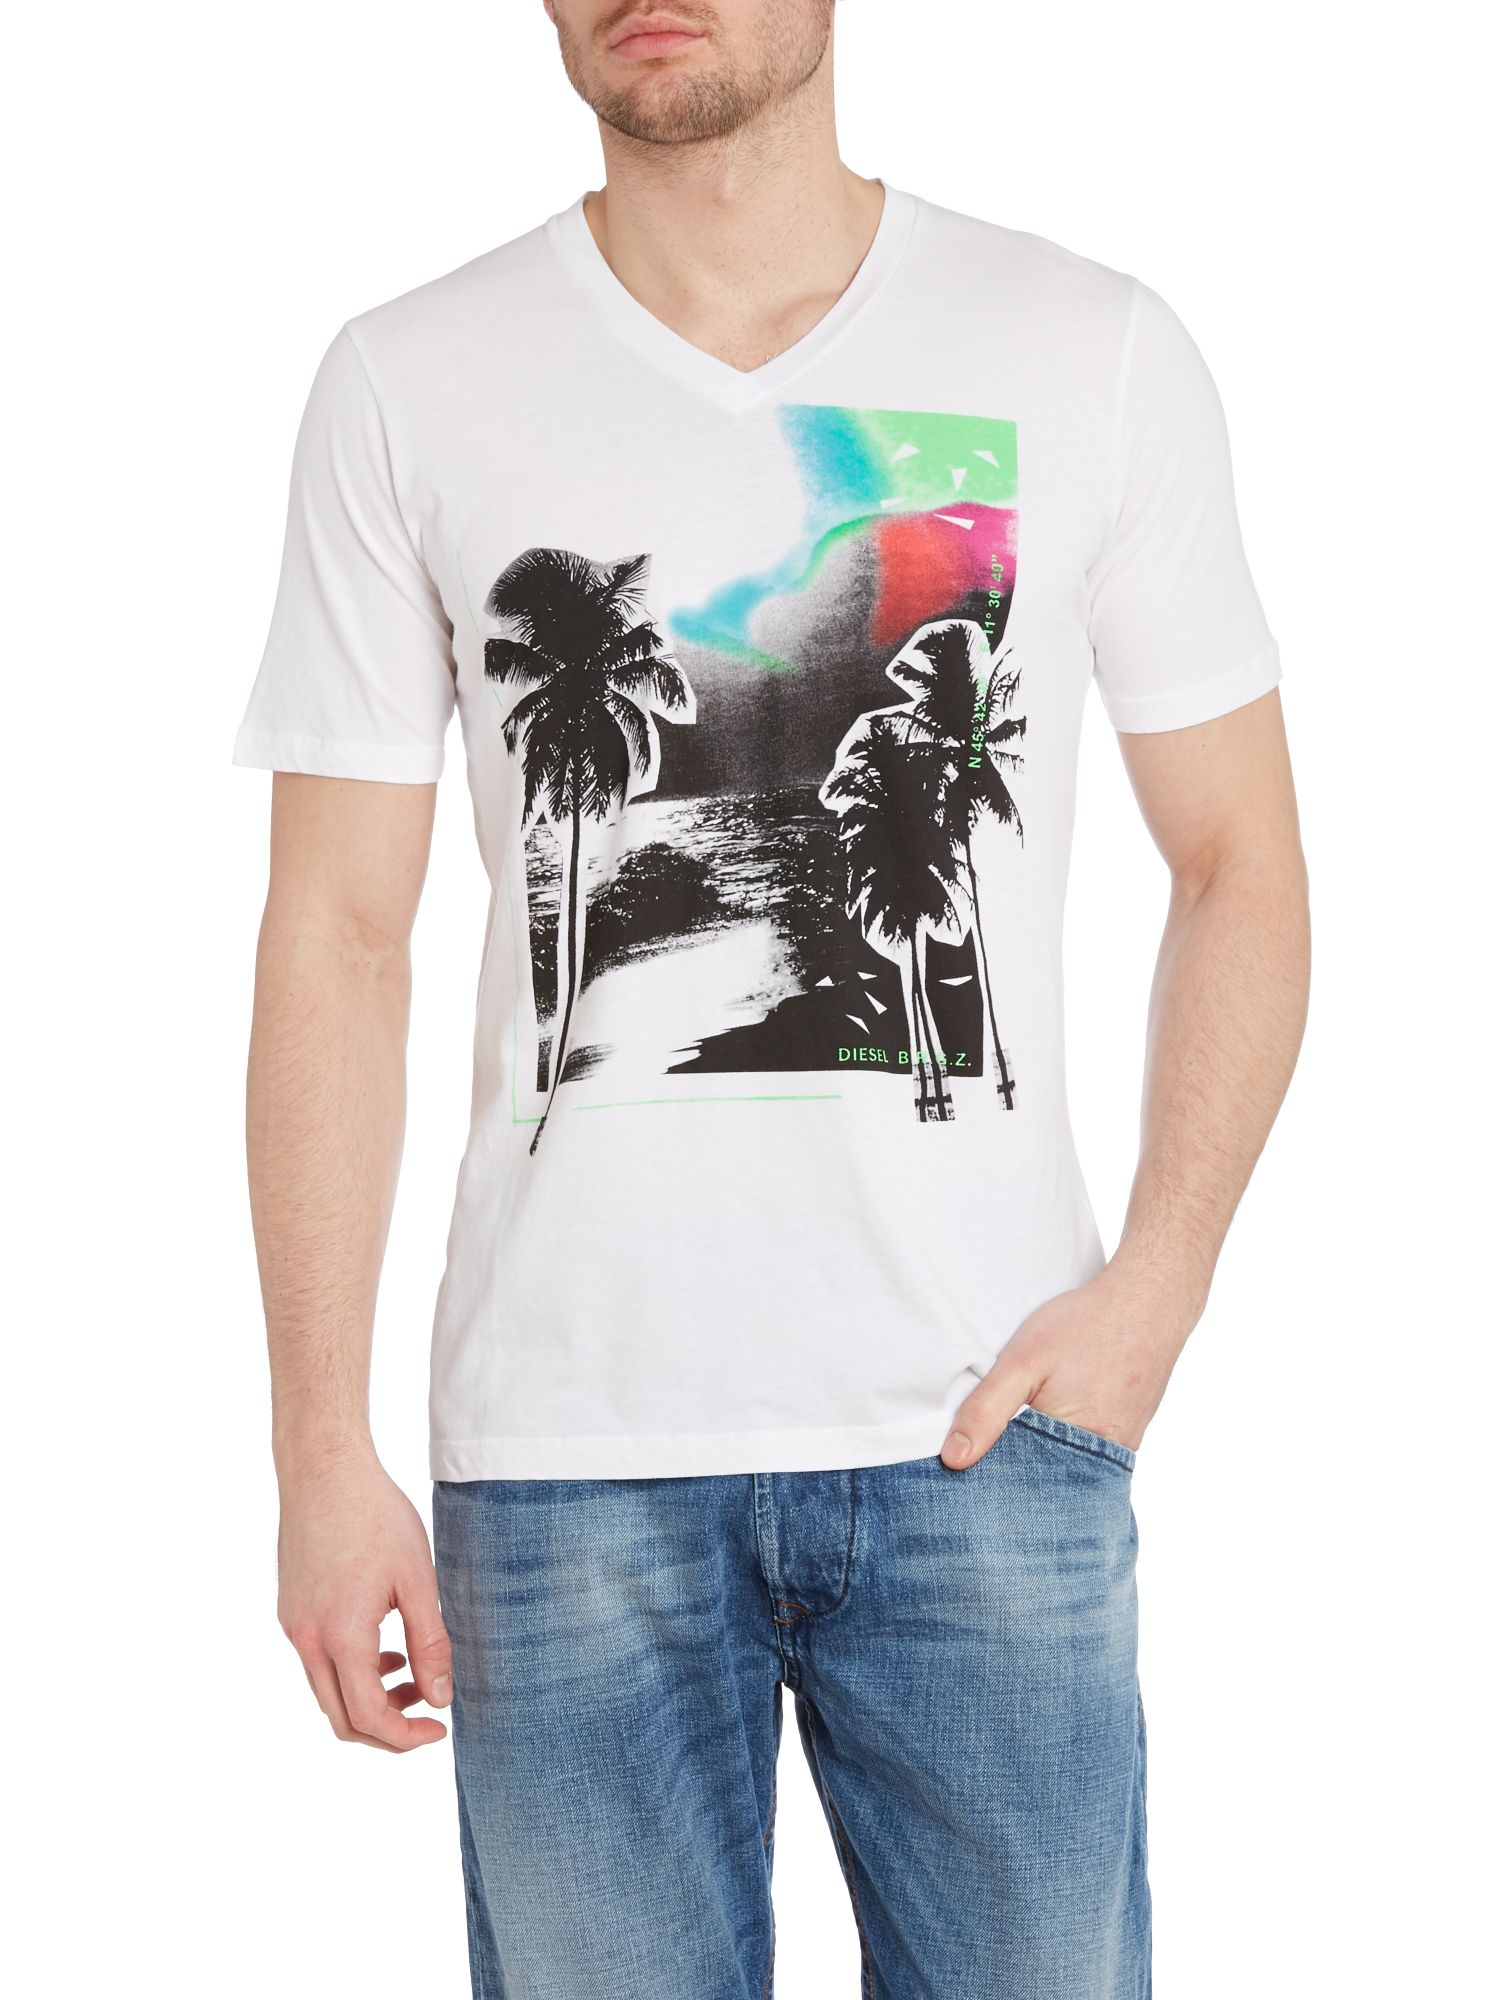 T-wat vee neck palm tree print t shirt